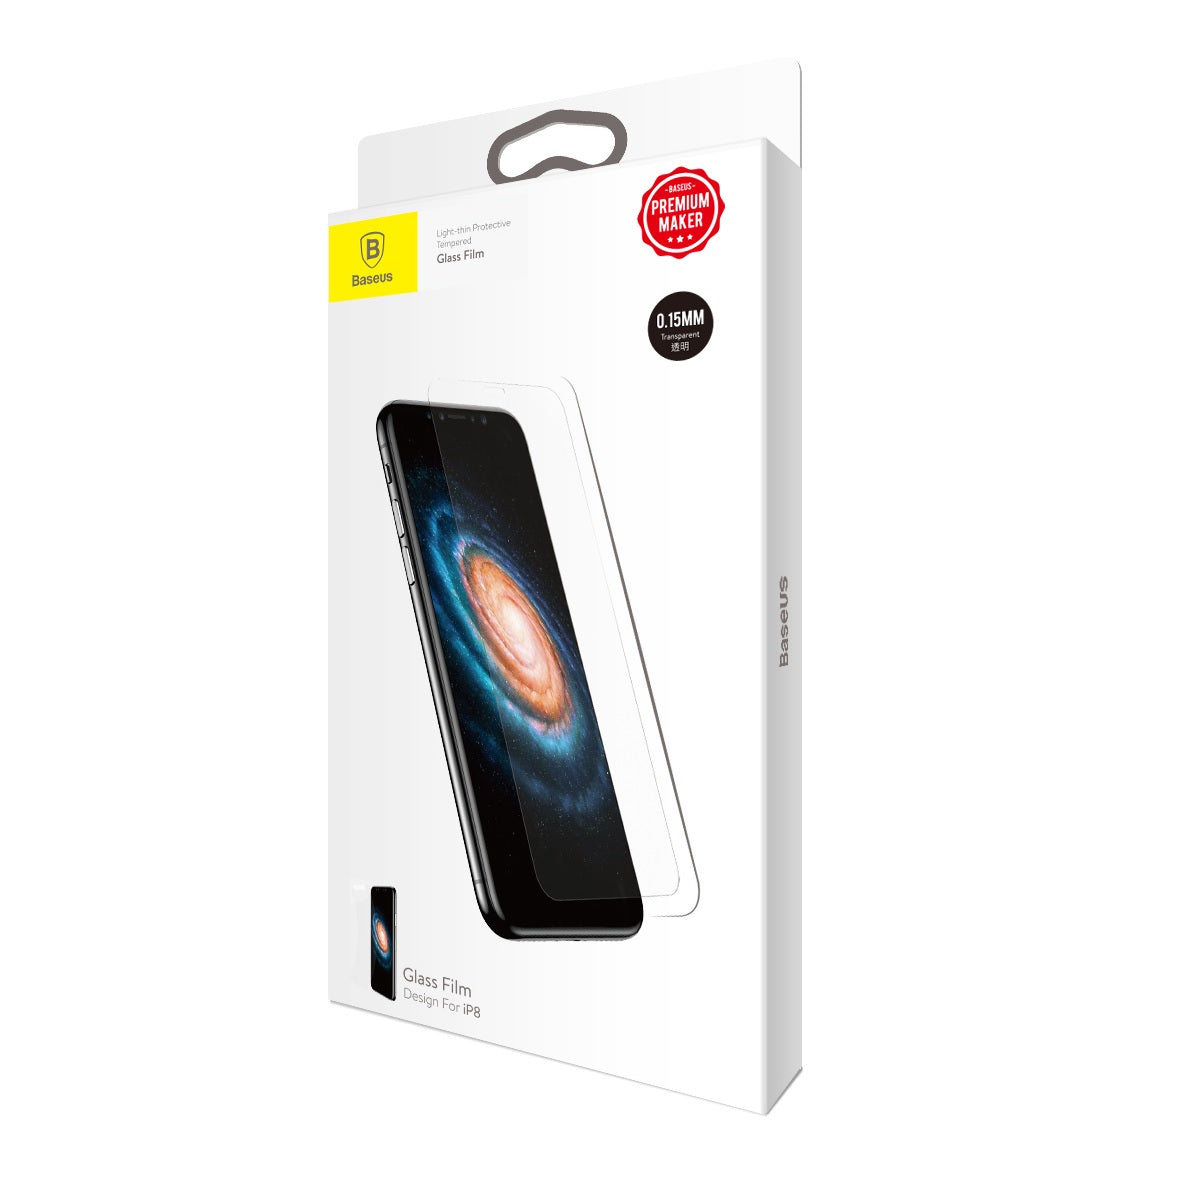 Baseus Super Thin iPhone Tempered Glass Screen Protector